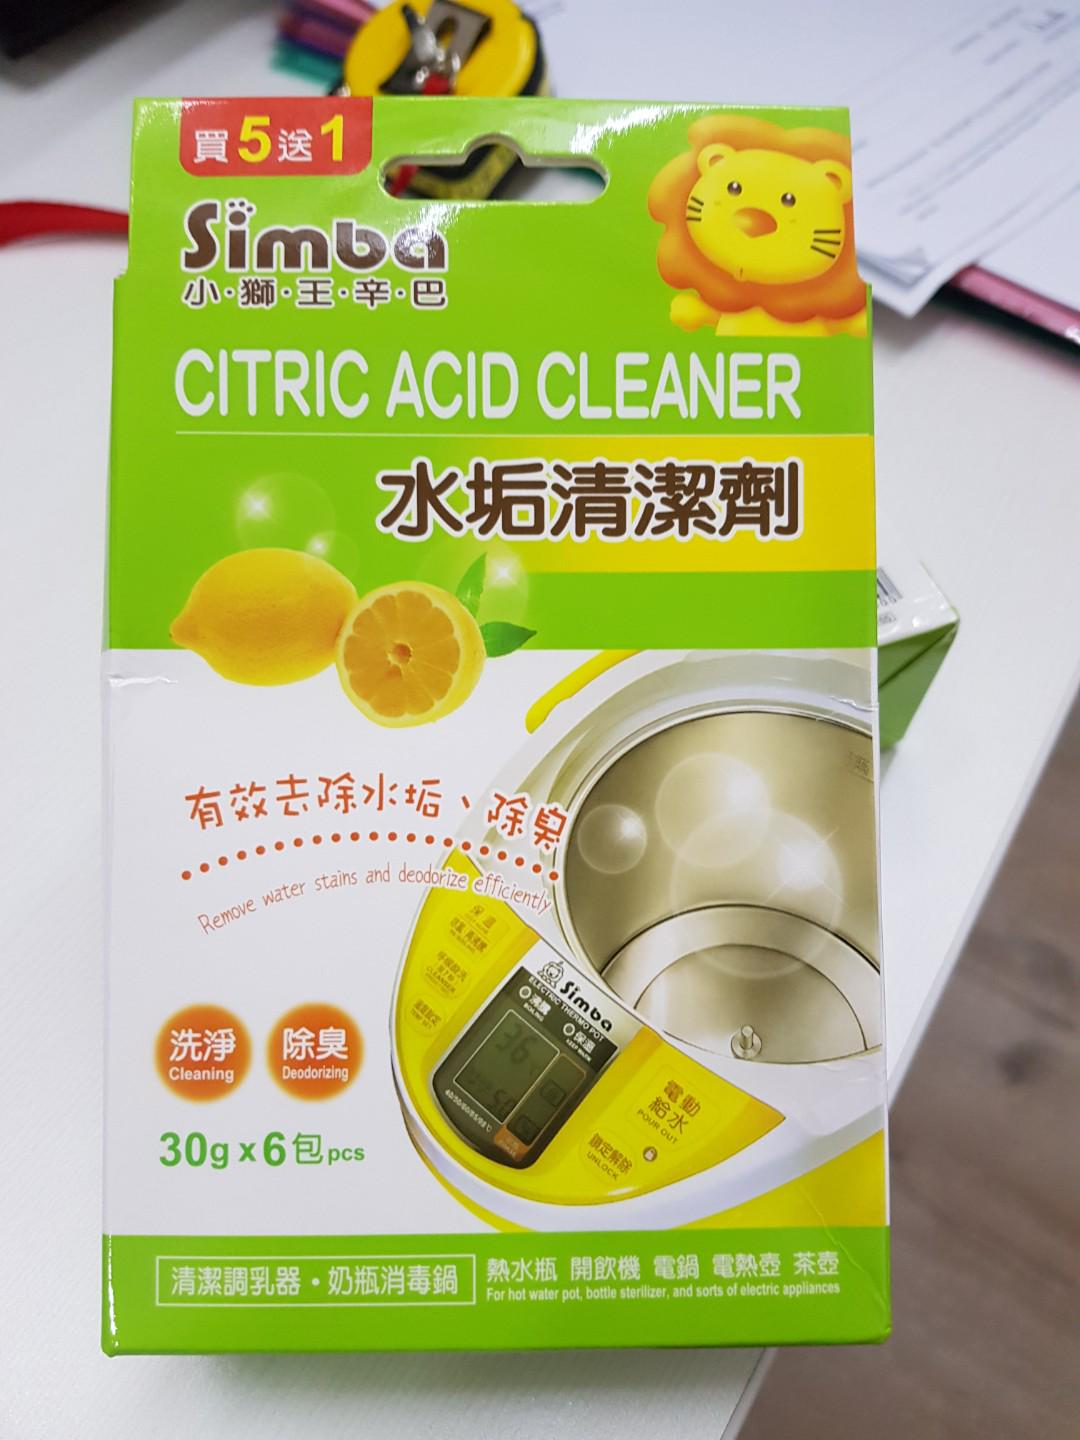 CITRIC ACID CLEANER, Home Appliances, Cleaning & Laundry on